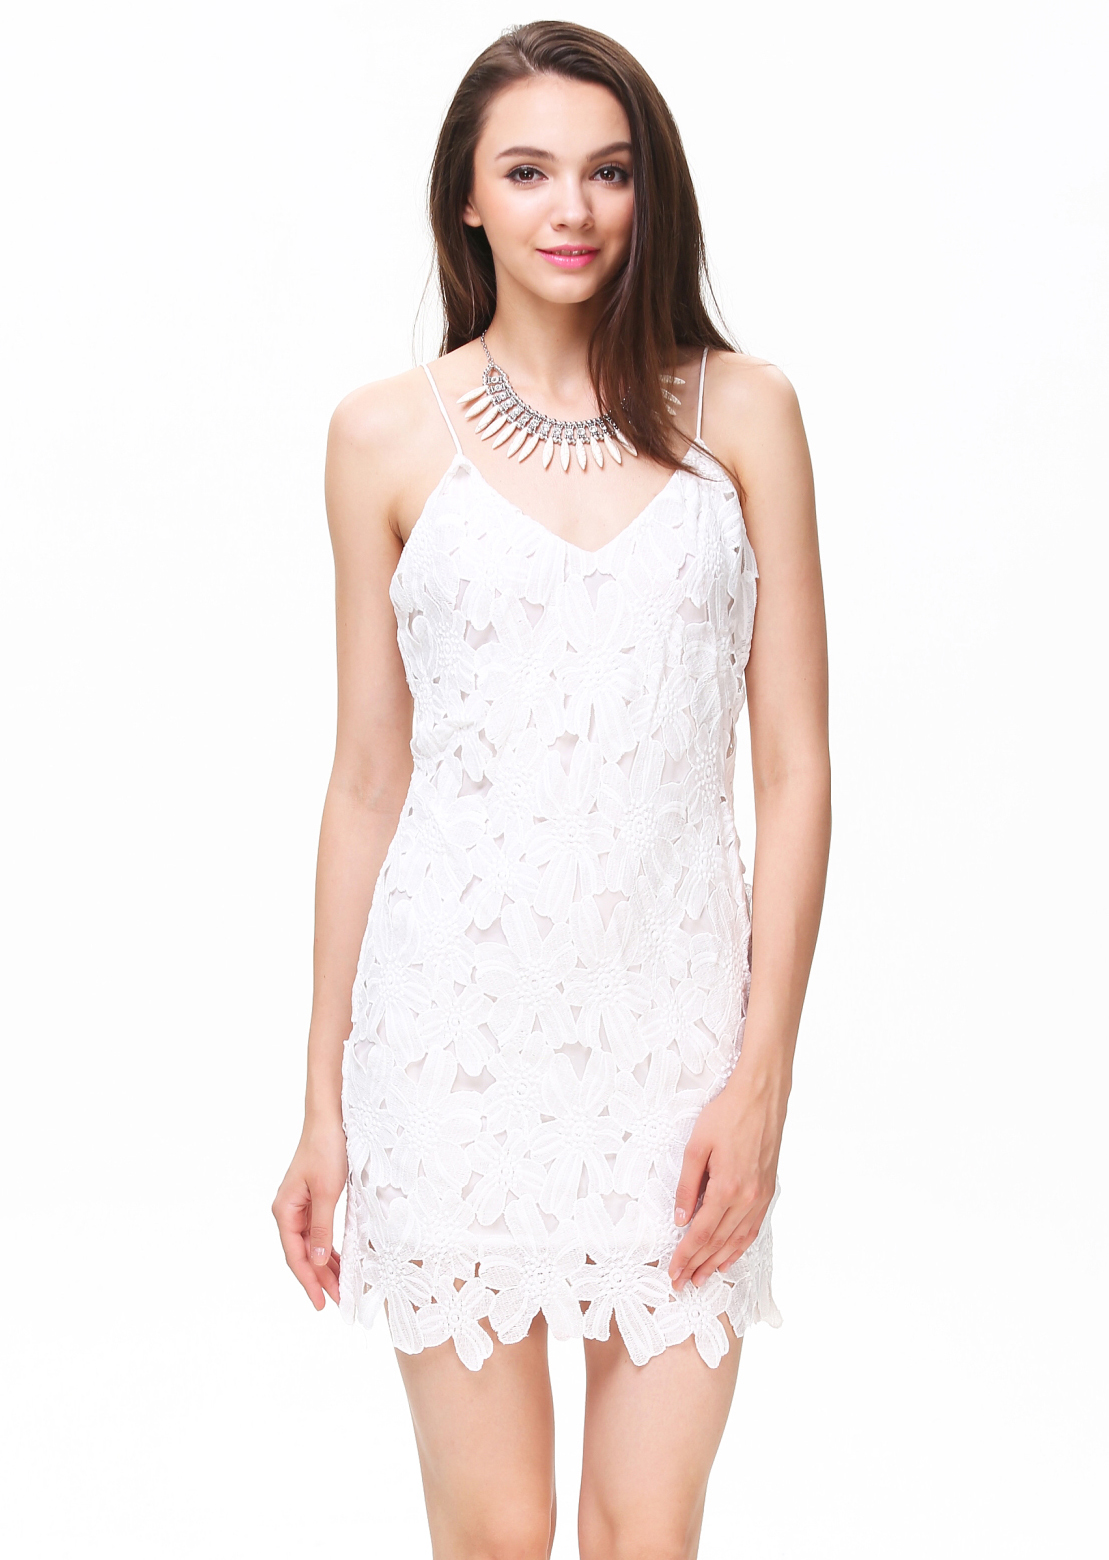 White Spaghetti Strap Deep V-back Crochet Dress - Sheinside.com